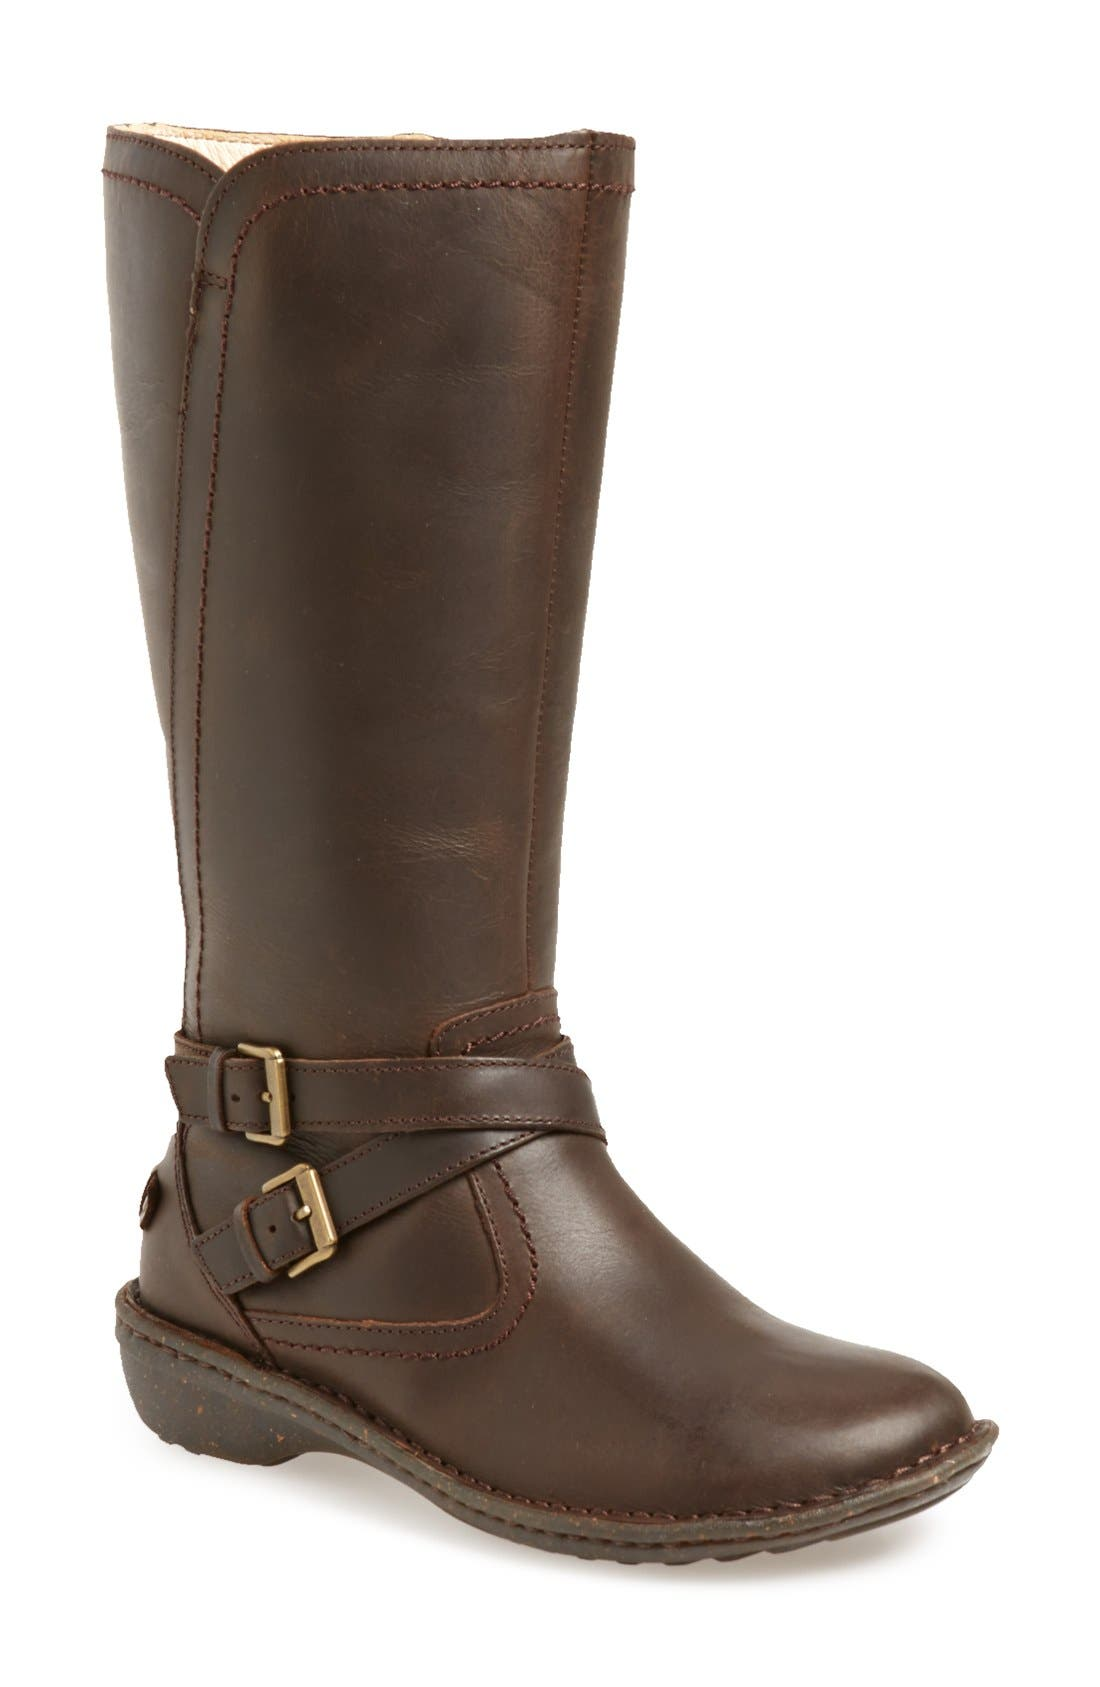 Alternate Image 1 Selected - UGG® Rosen Tall Boot (Women)